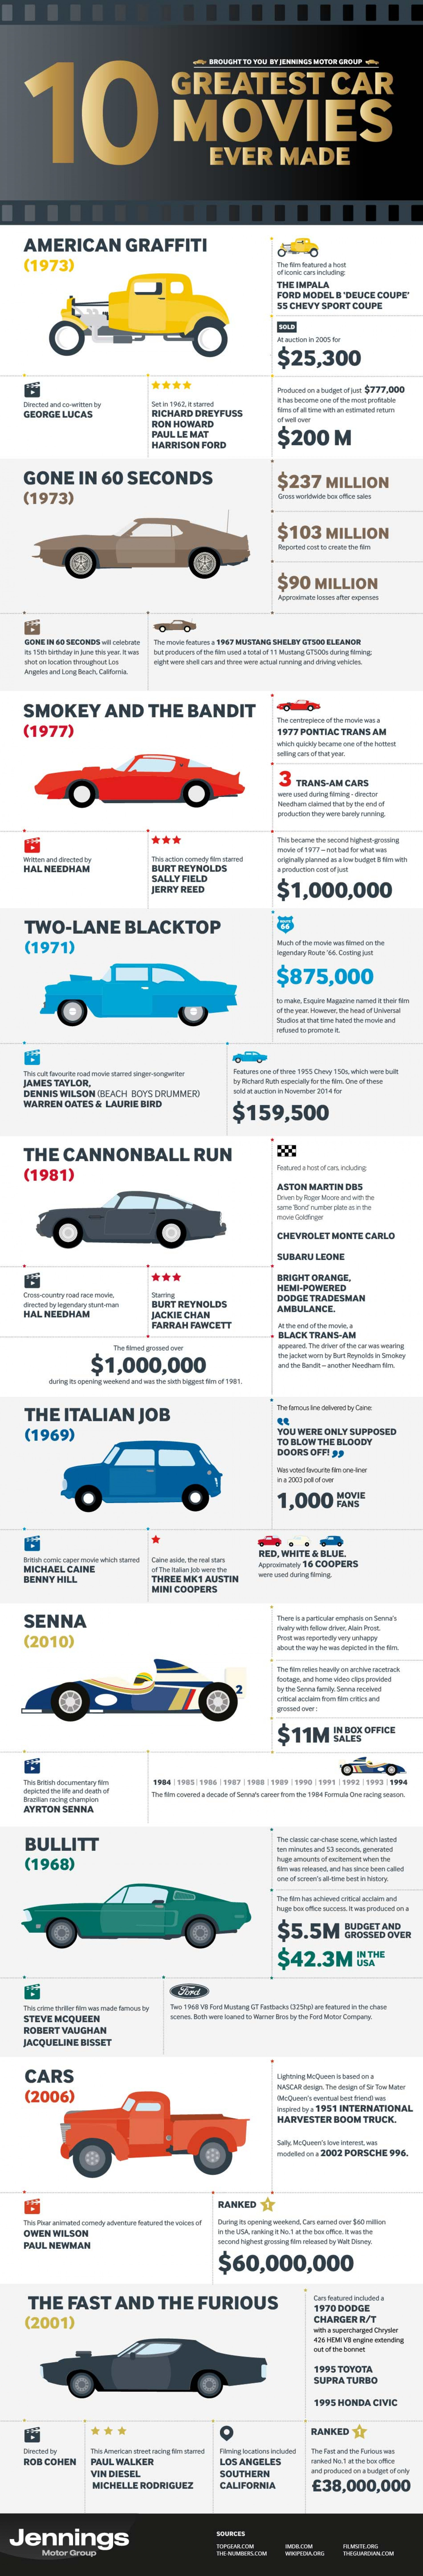 The 10 Greatest Car Movies Ever Made Infographic